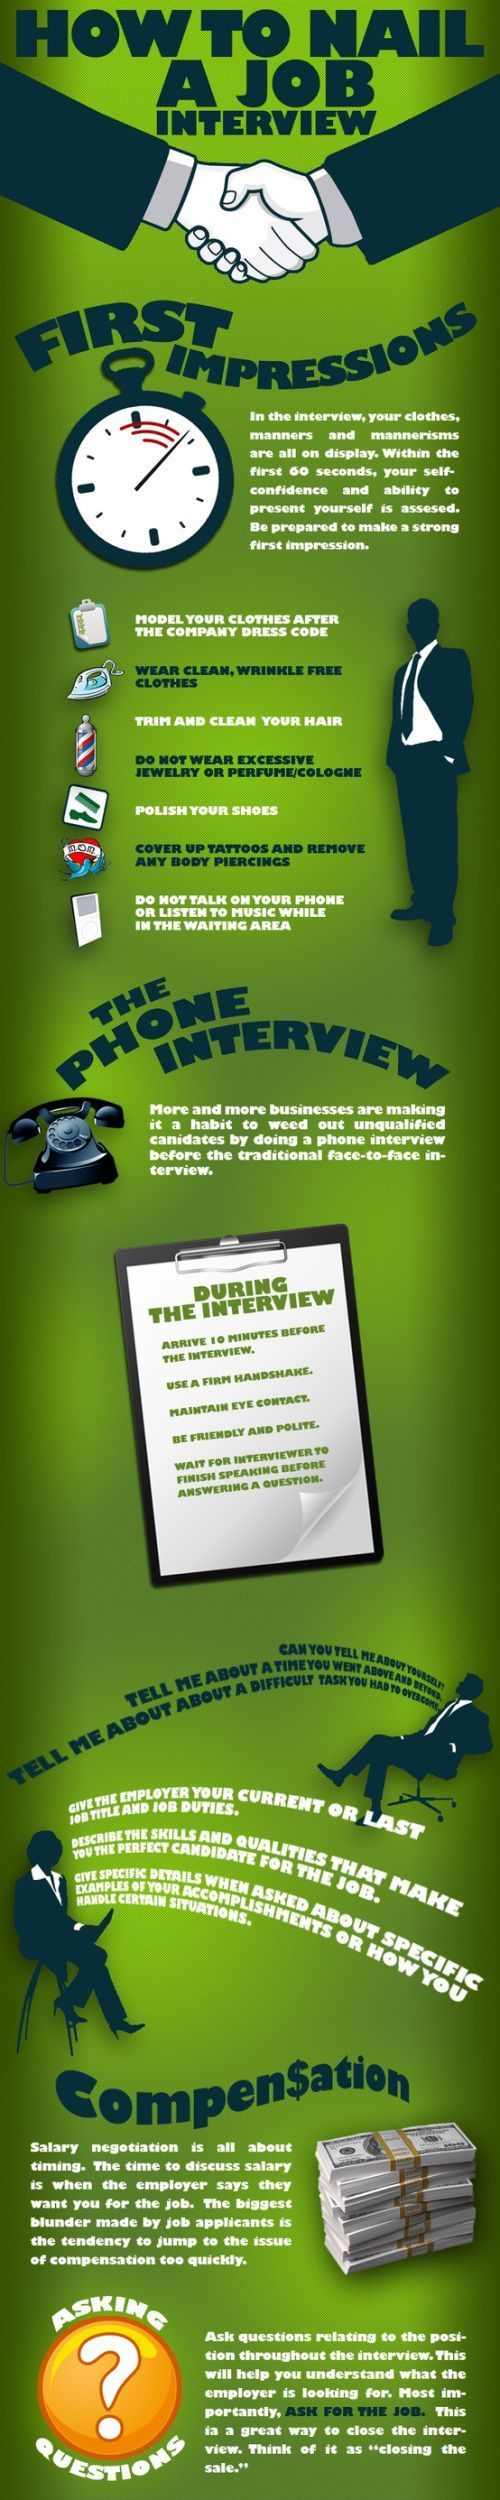 how to ask for travel expenses for an interview